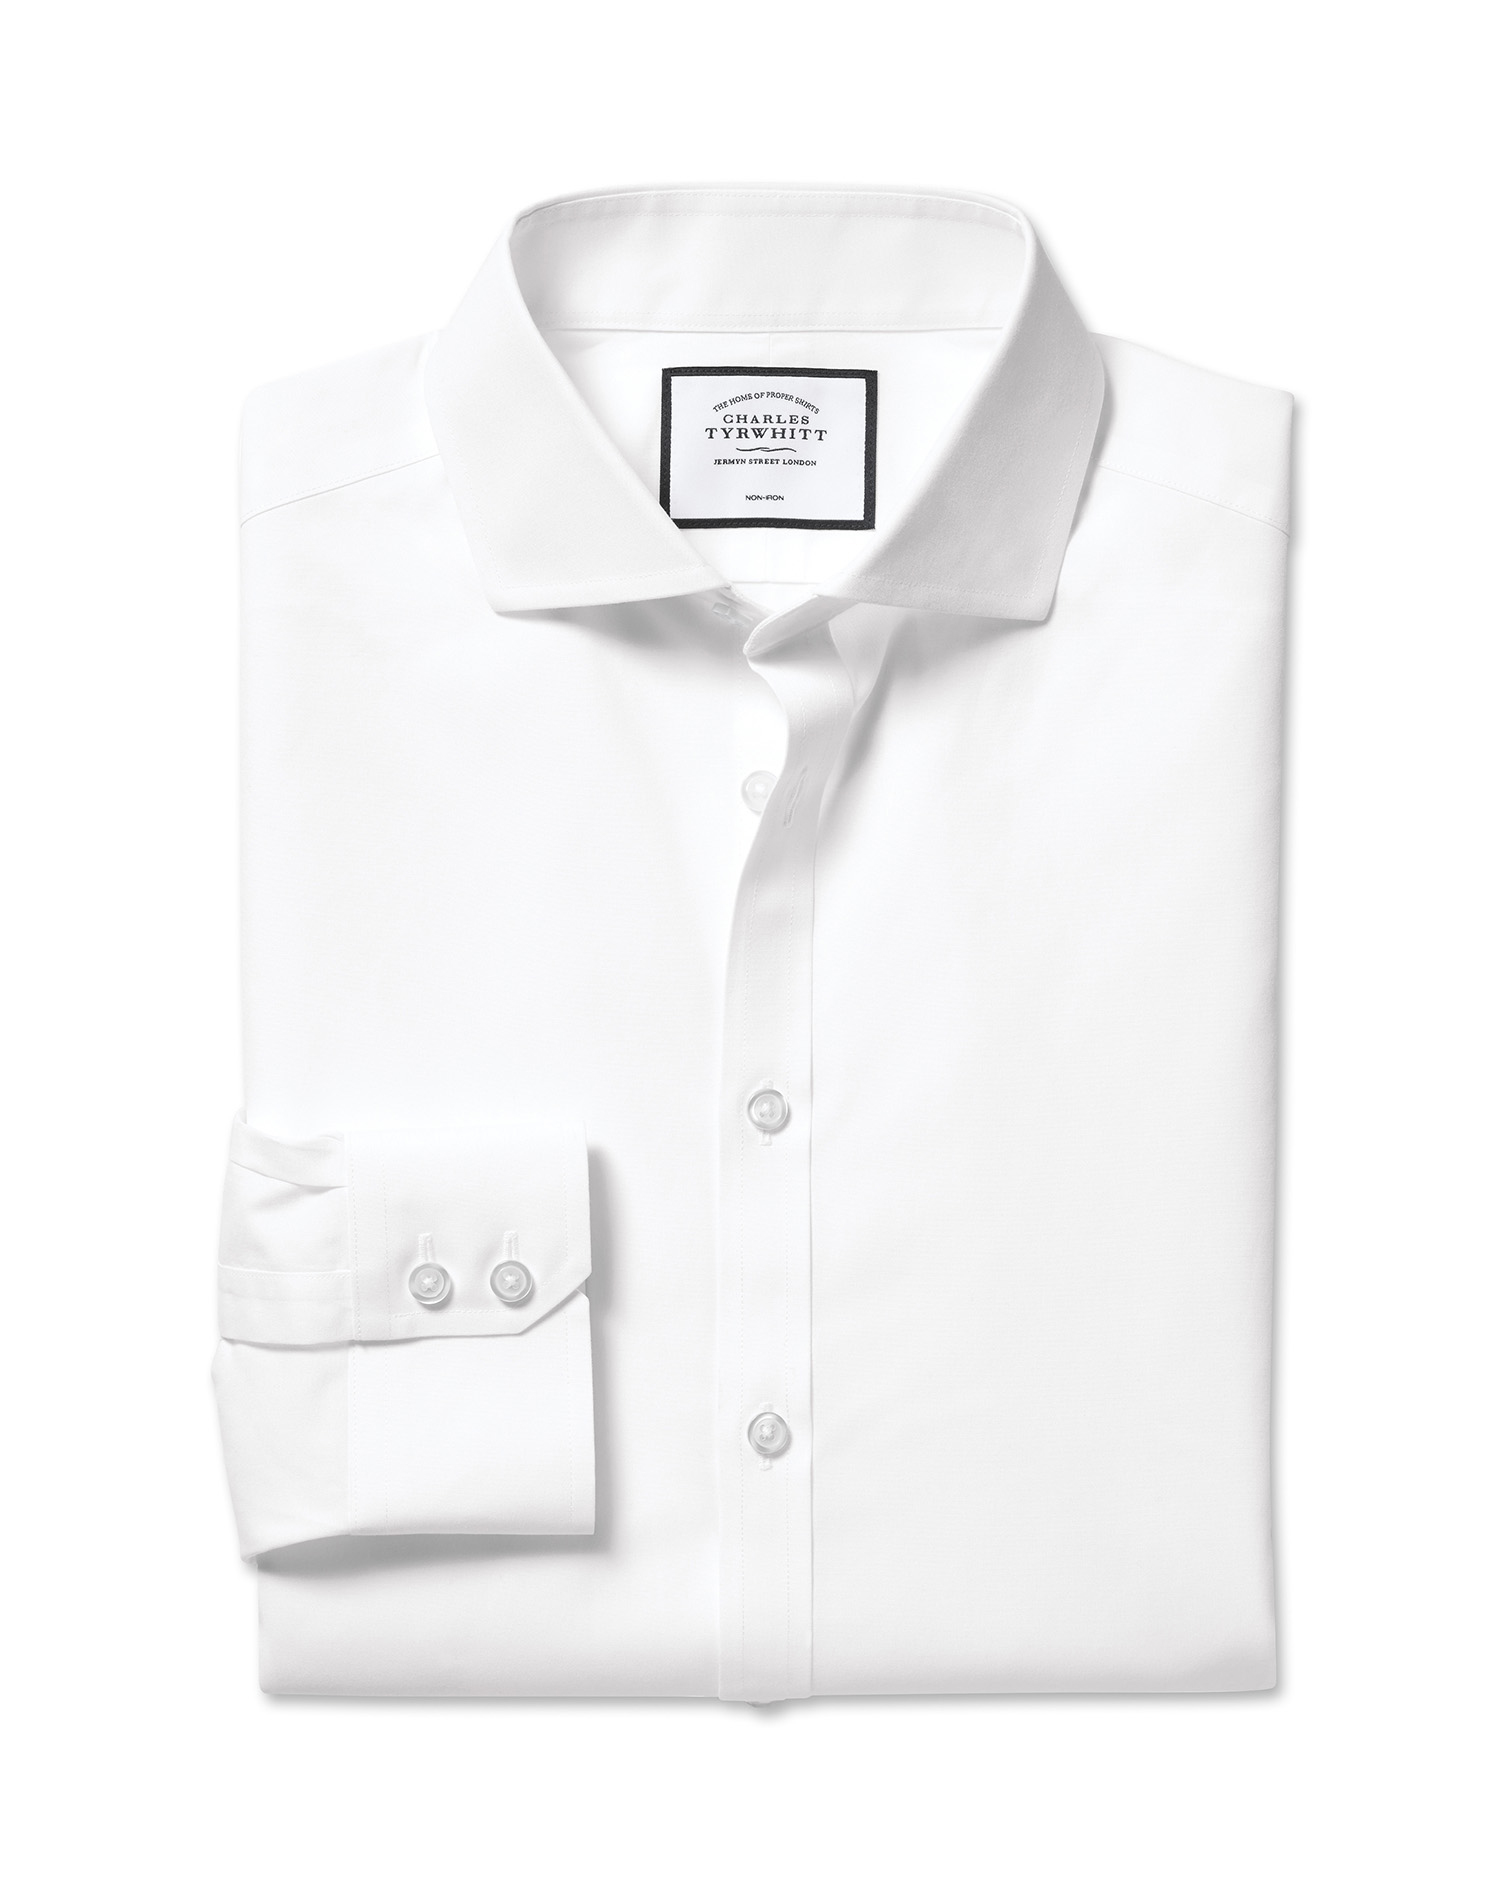 Extra Slim Fit Cutaway Non-Iron Natural Cool White Cotton Formal Shirt Single Cuff Size 17.5/36 by C